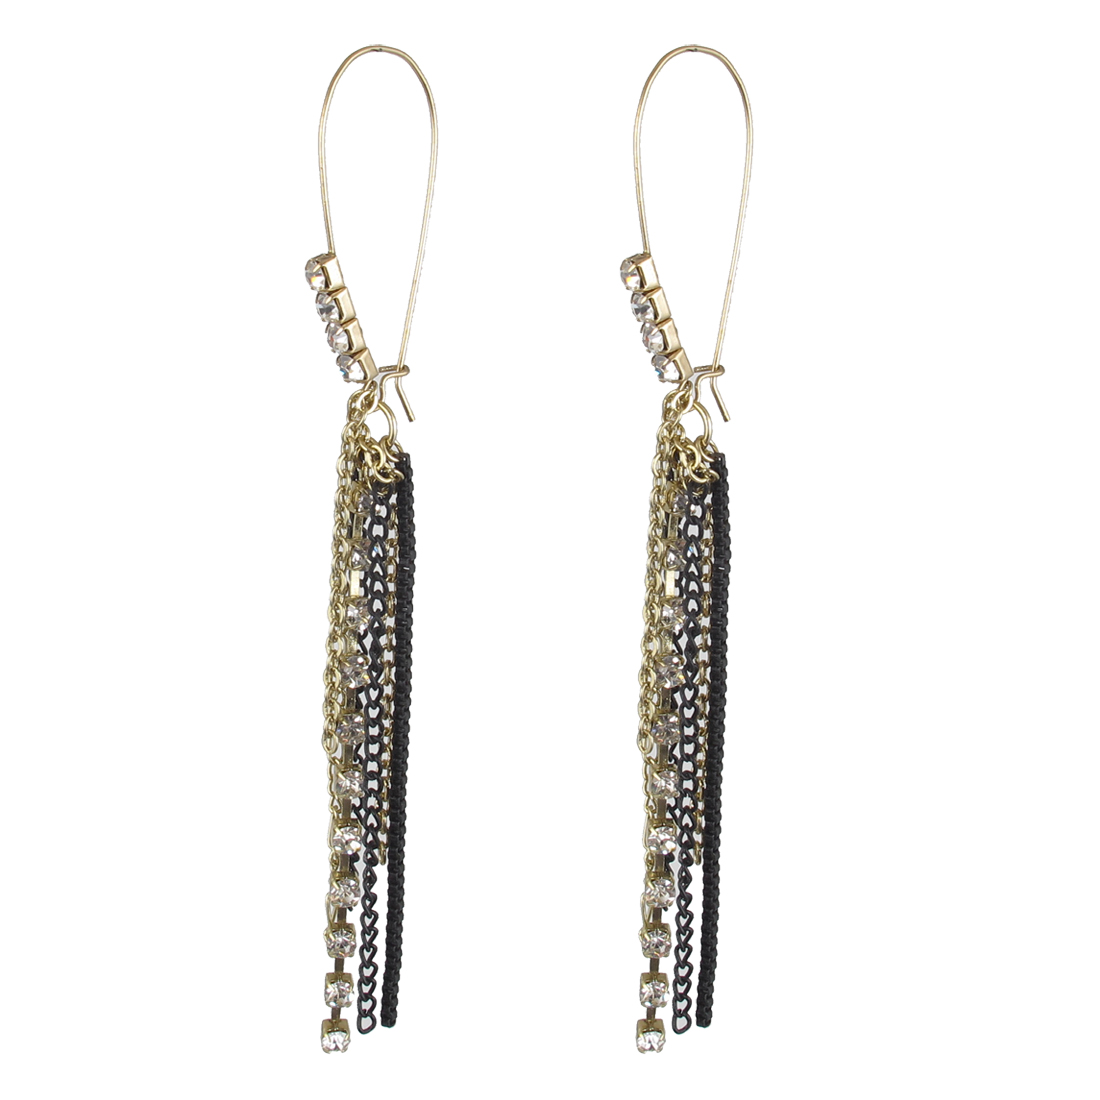 "Women Plastic Crystals Decor Metal Chain Tassels Pendant Fish Hook Earrings Earbob Eardrop Copper Tone Black 5"" Length Pair"